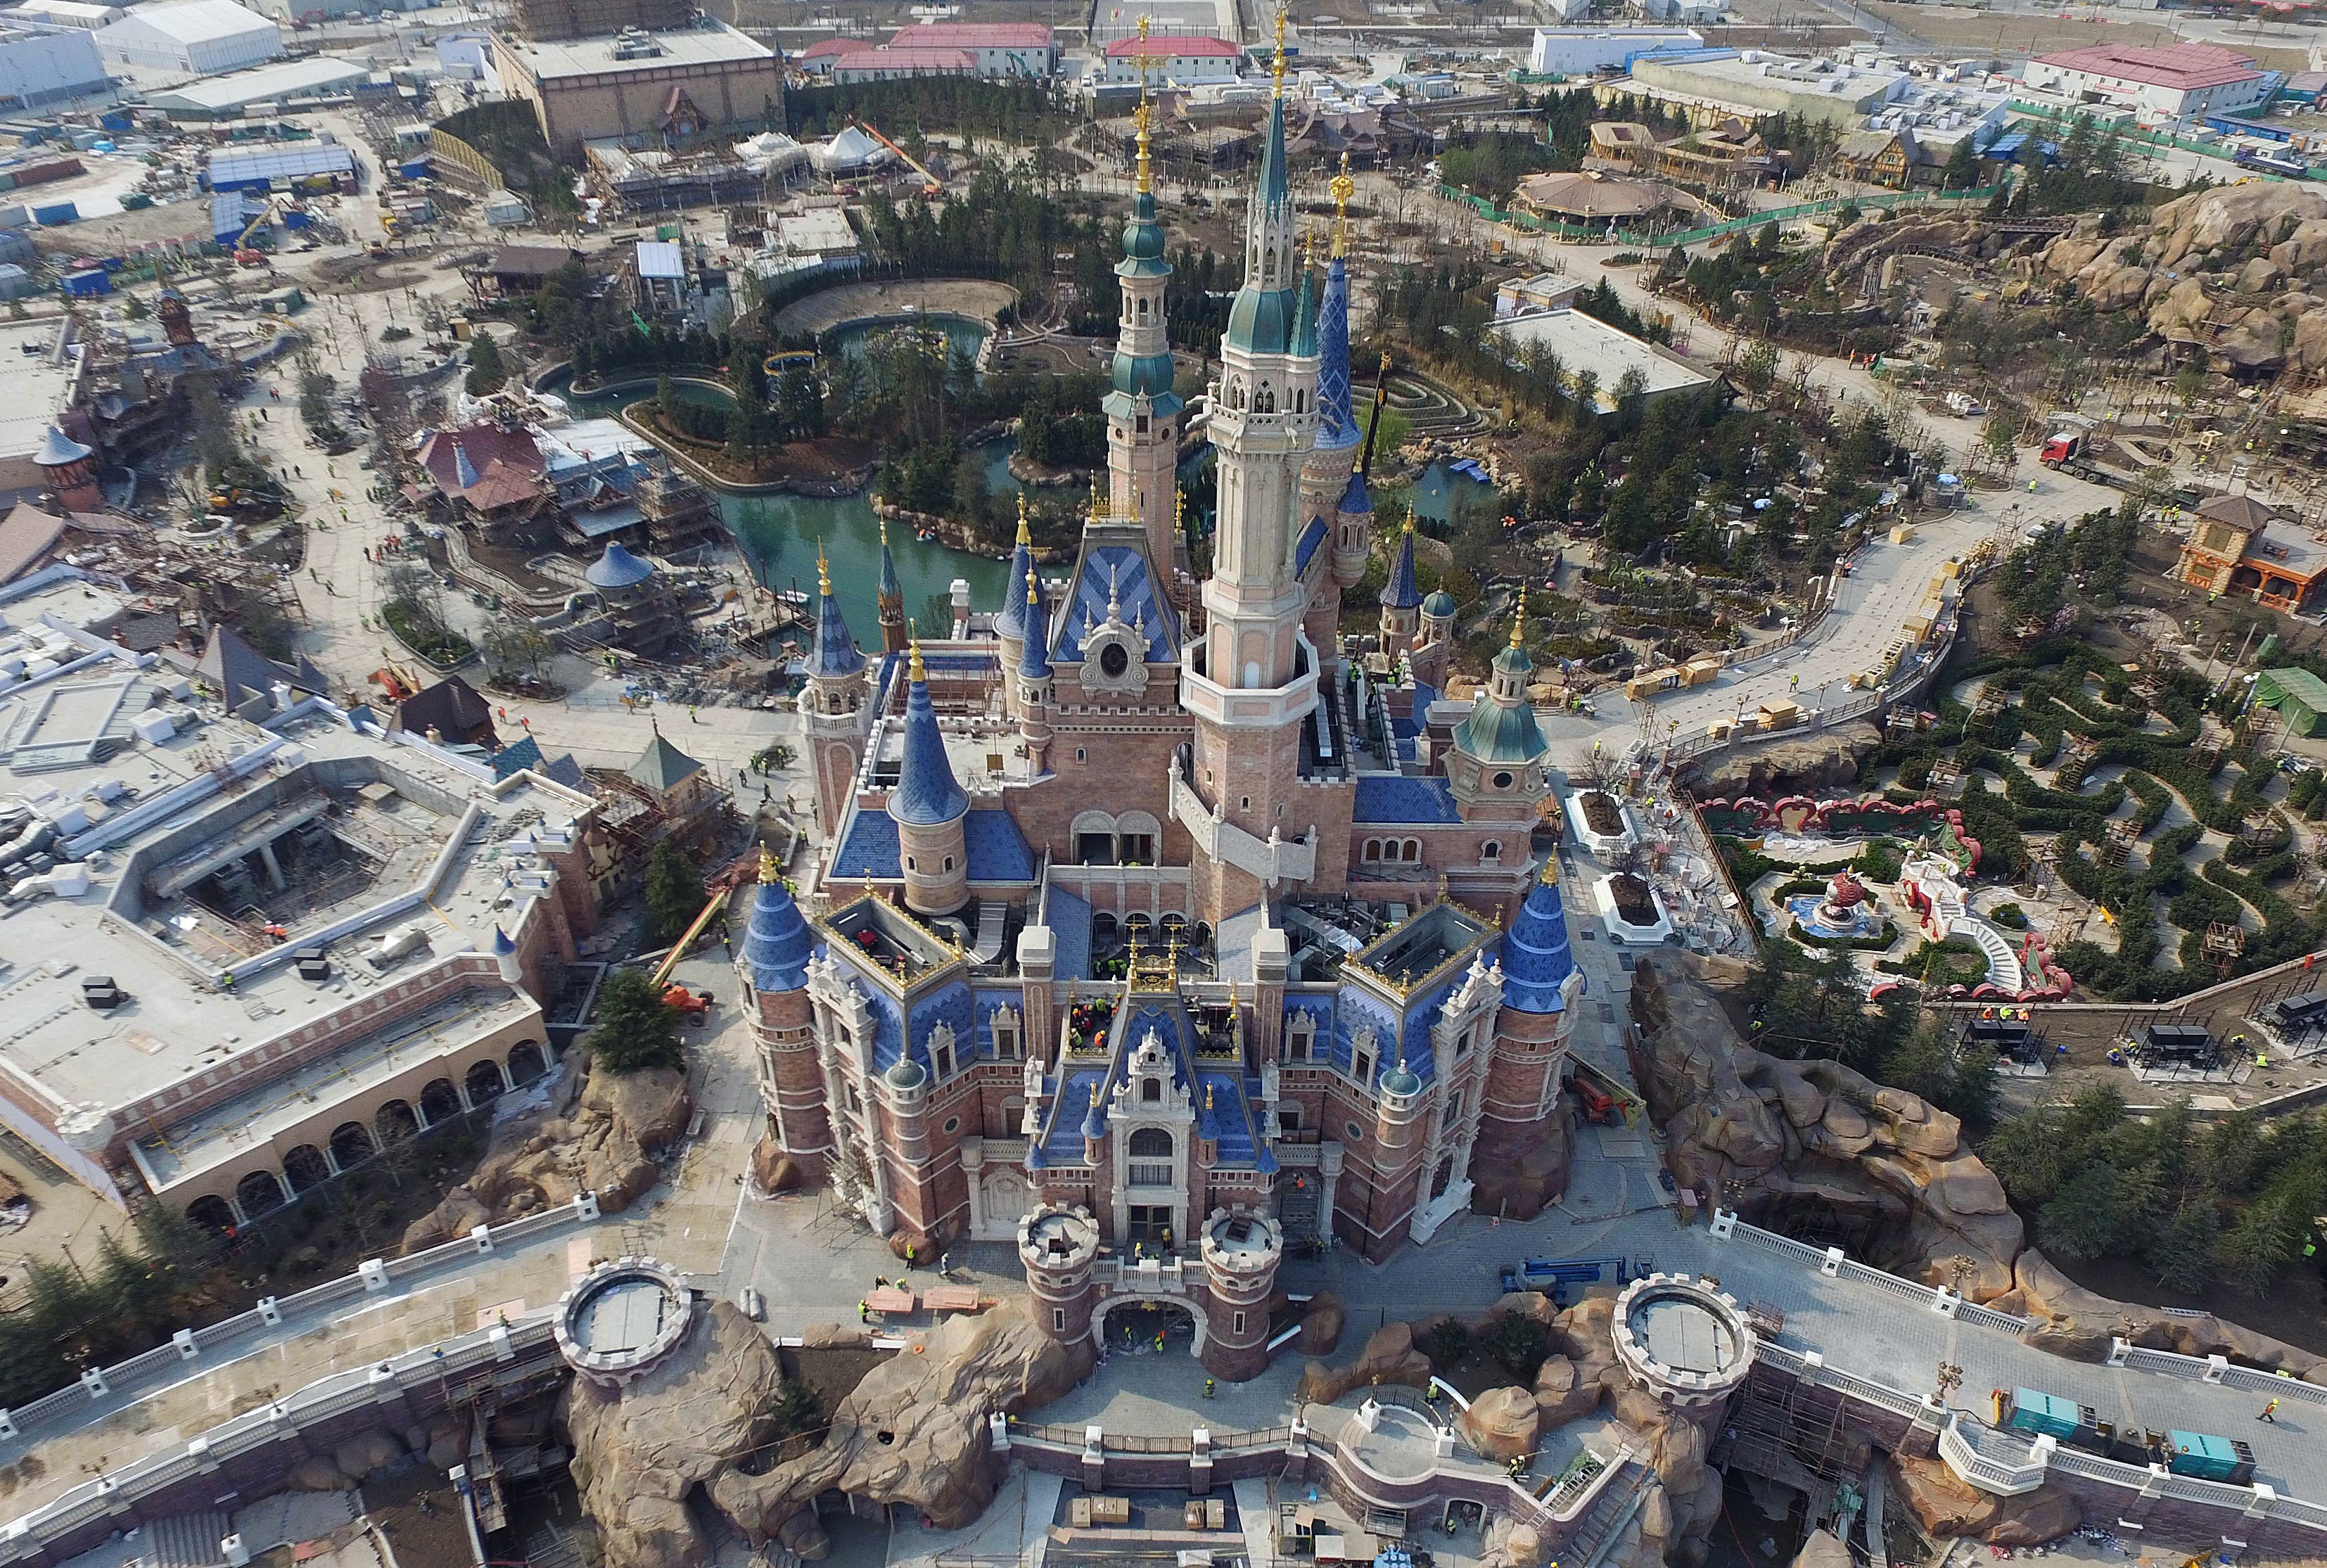 How Disney's (DIS) Shanghai Resort Fits Into The Executive Shakeup At The Mouse House